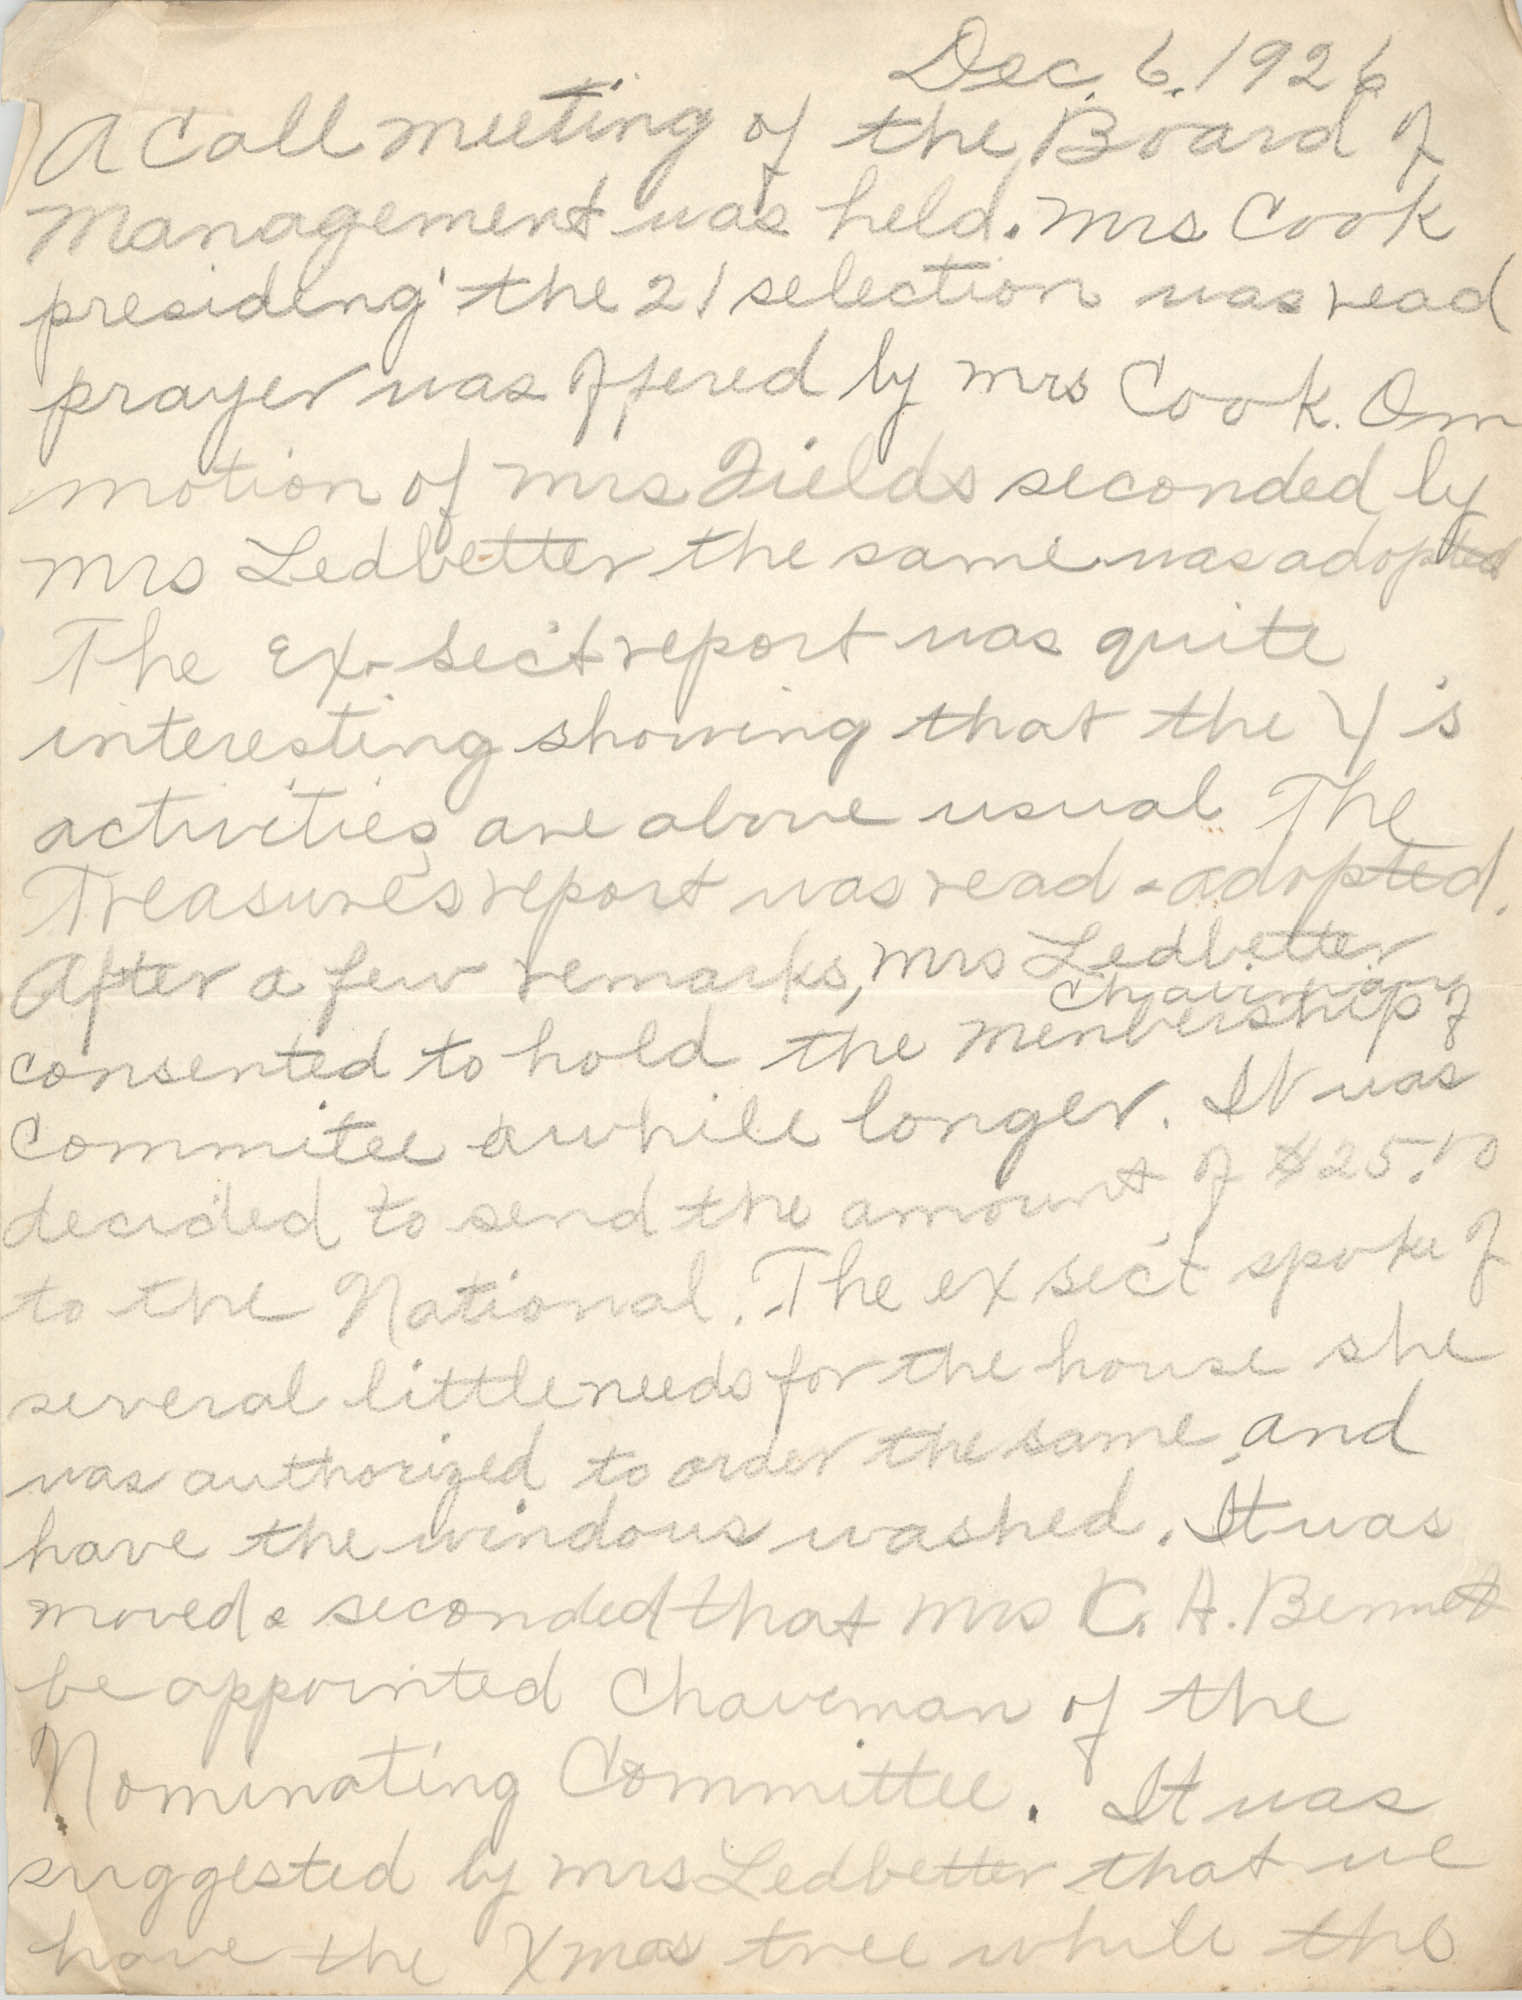 Minutes to the Board of Management, Coming Street Y.W.C.A., December 6, 1926